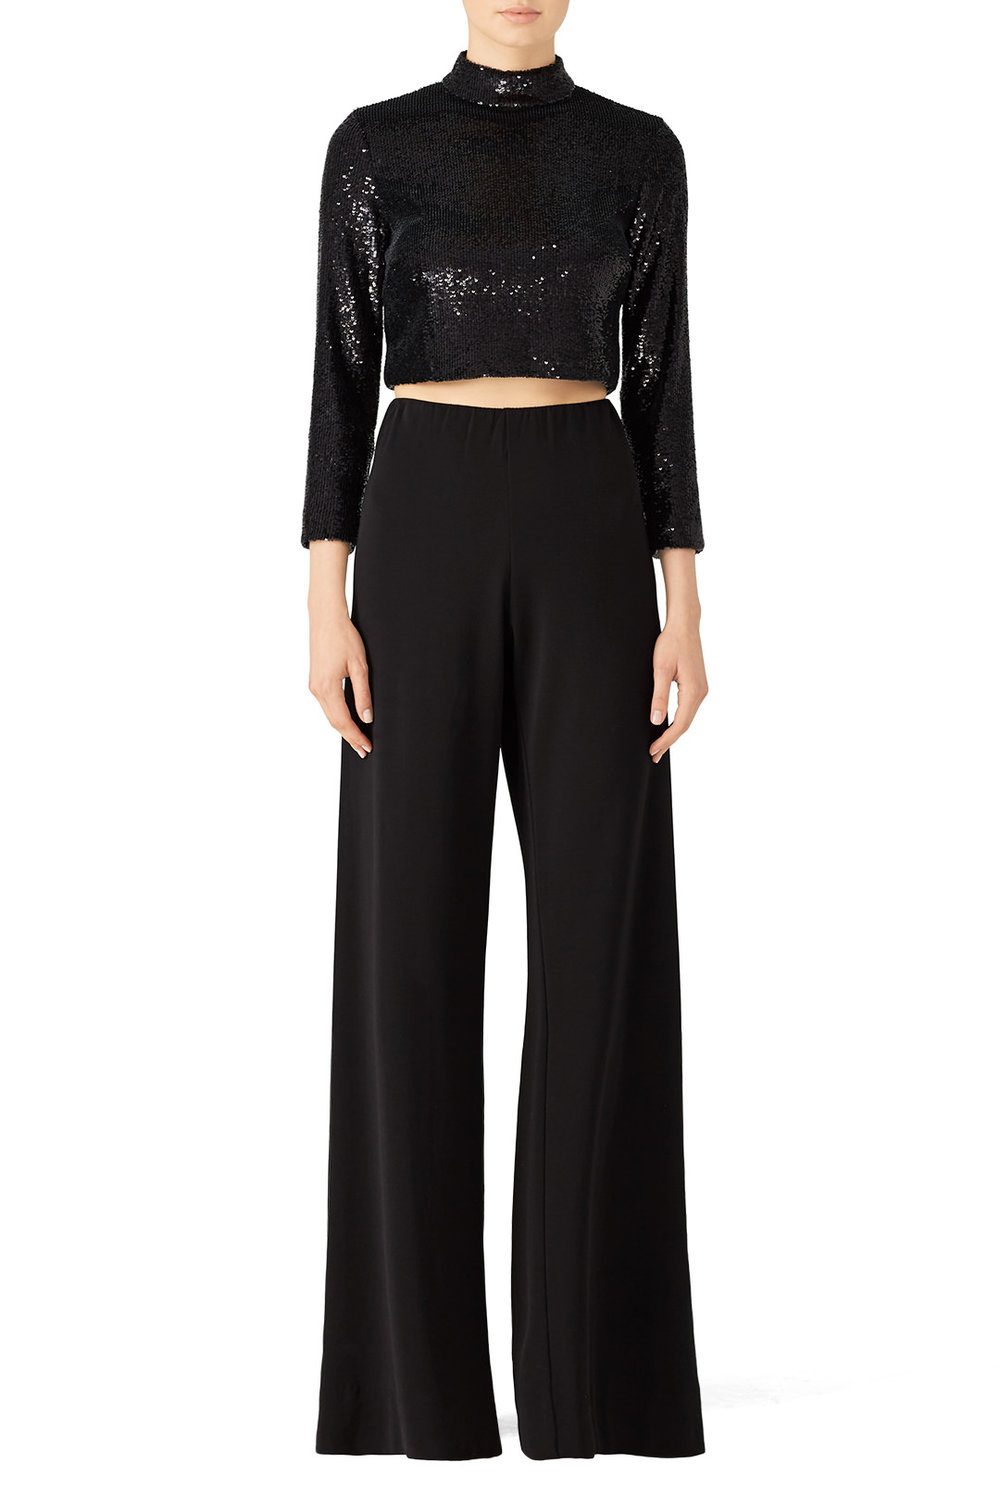 A.L.C. Keegan Top - I love me a good crop top. And this one has sequins…so it's a double win!